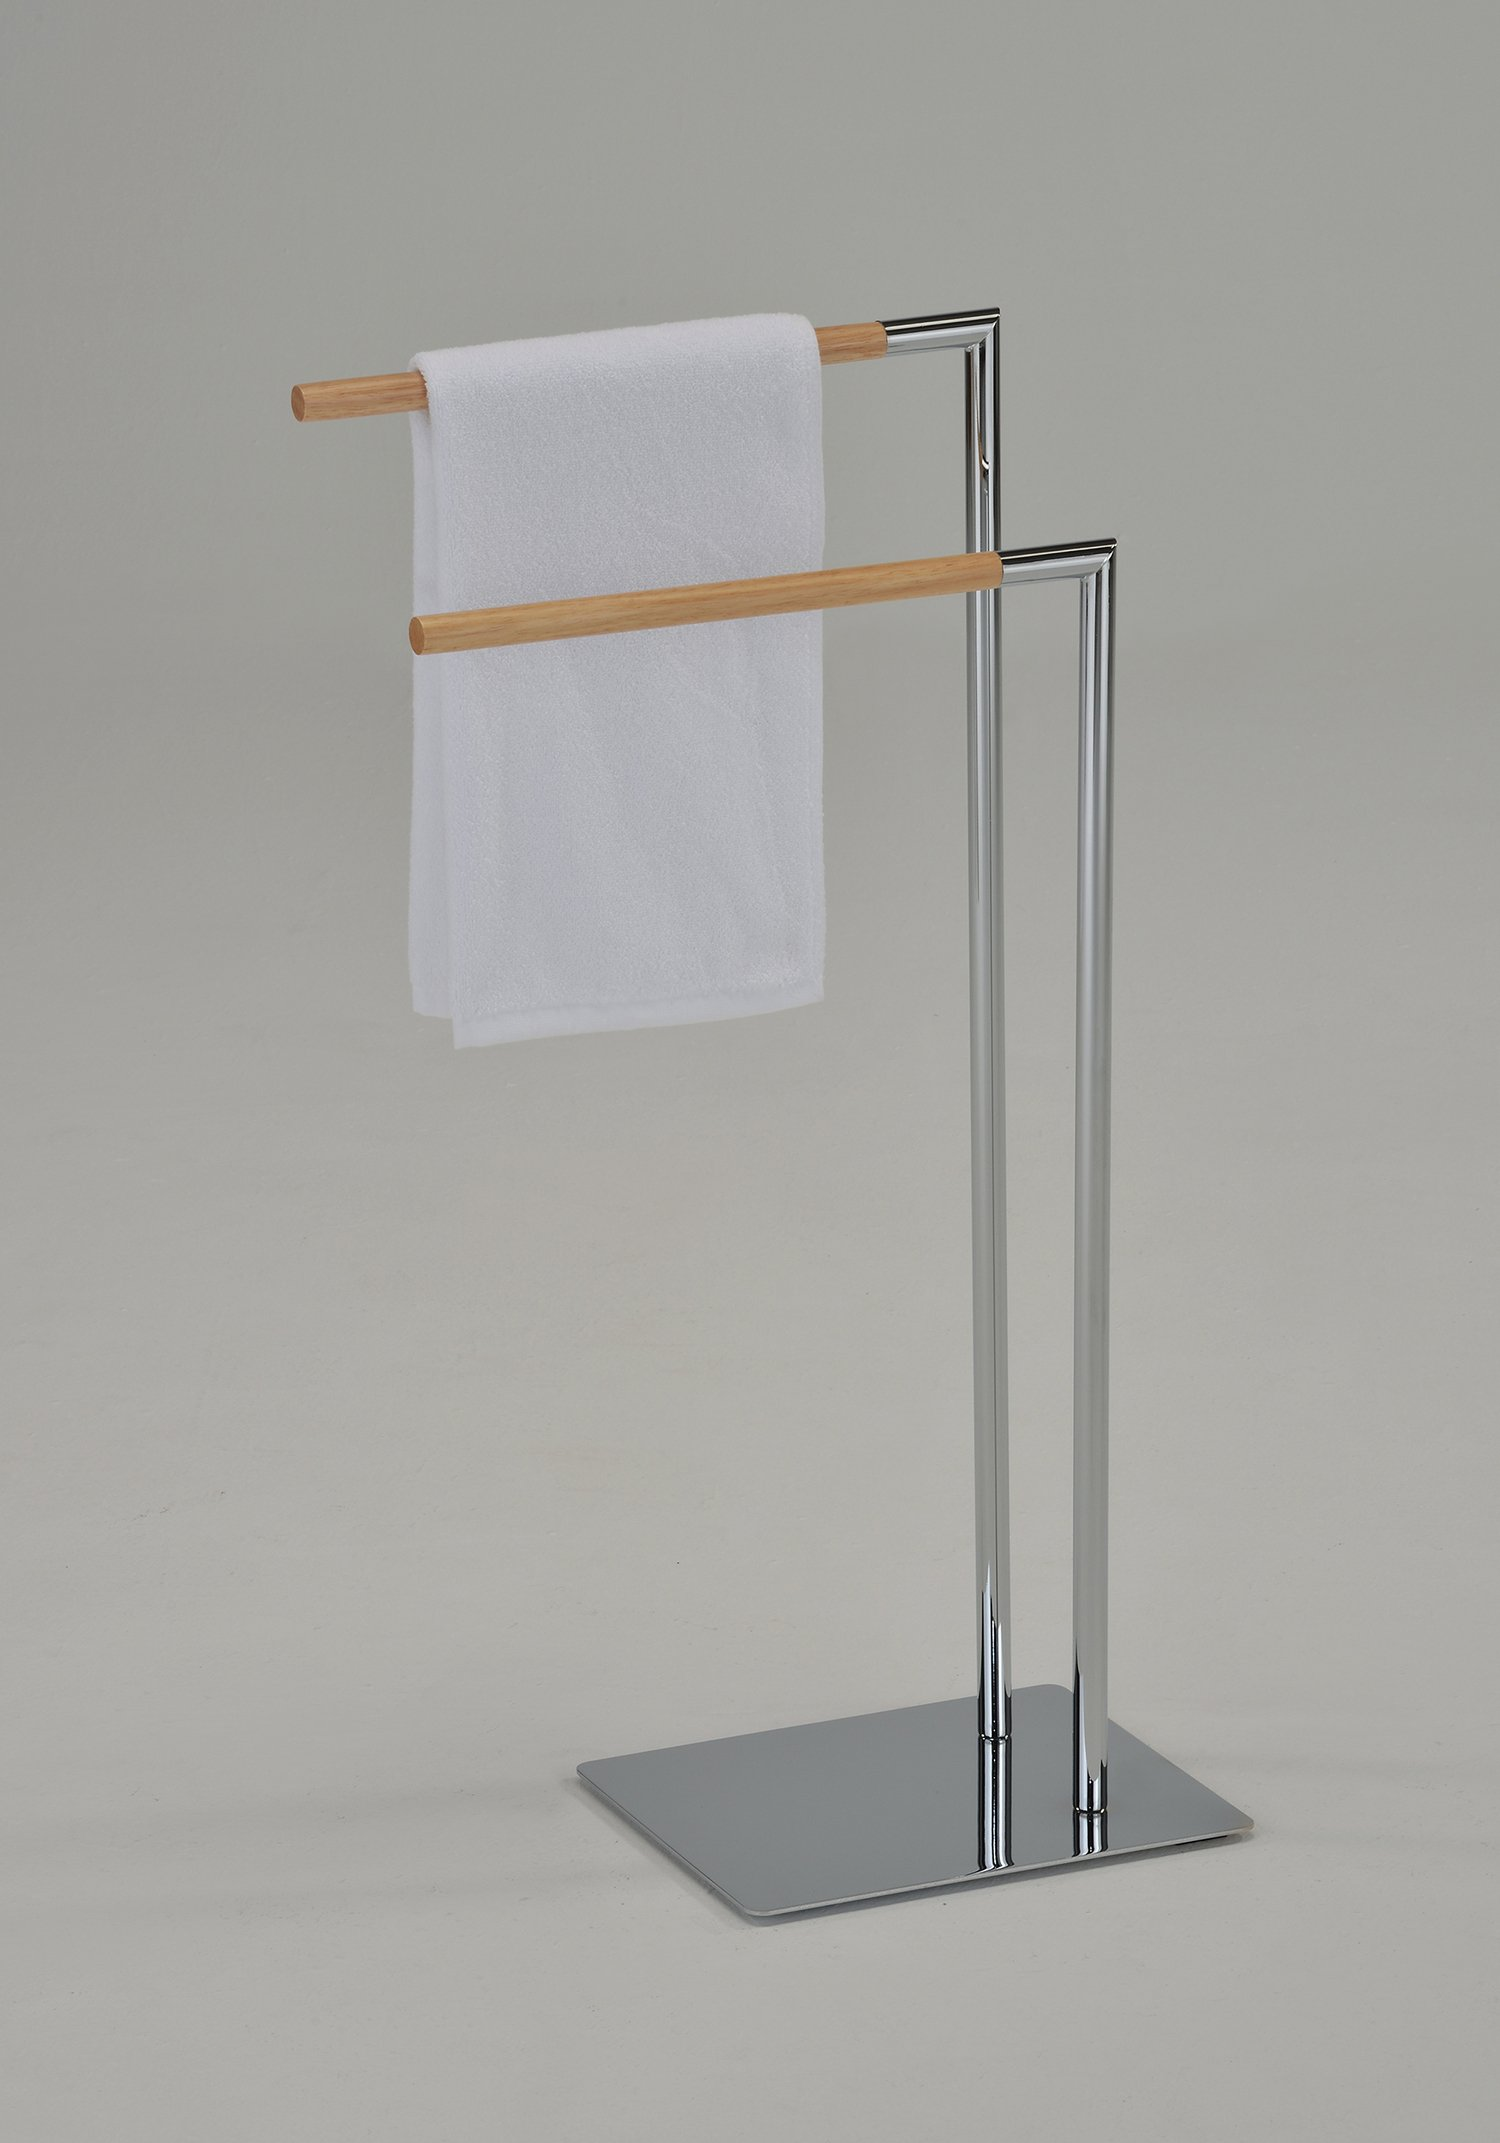 Kings Brand Chrome/Natural Finish Metal With Wood Towel Rack Stand